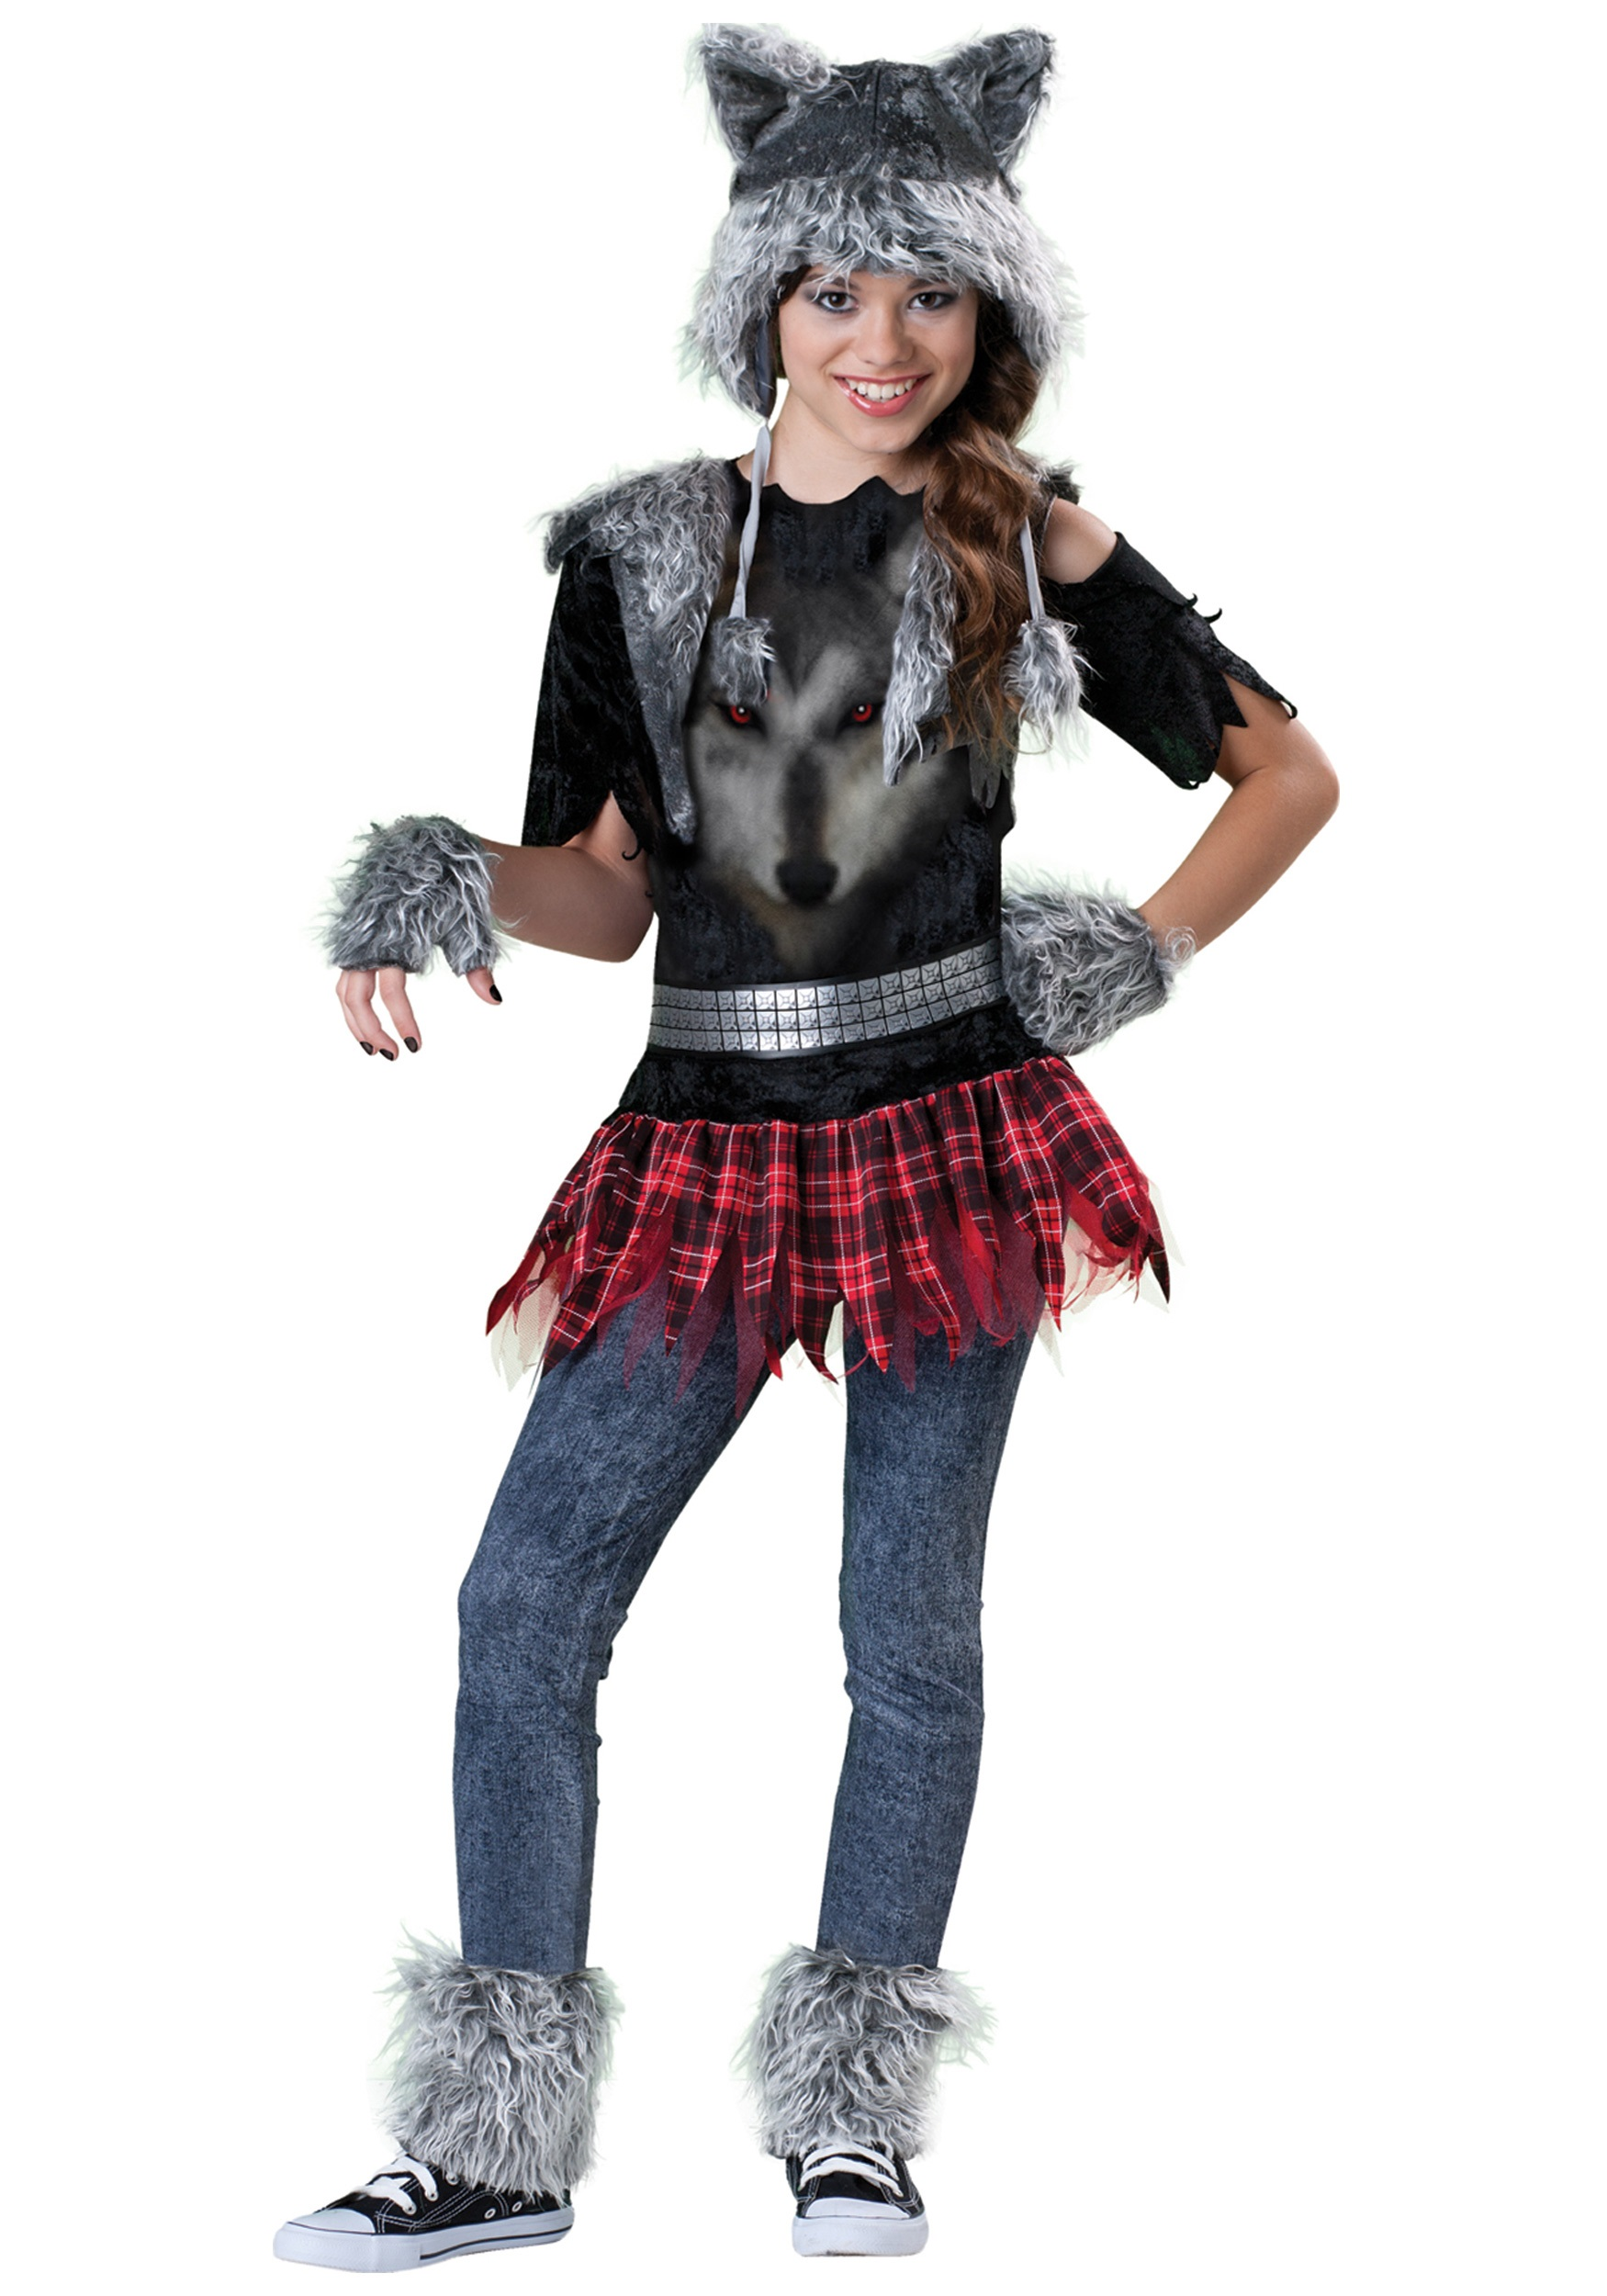 Tween Werewolf Costume | Werewolf Halloween Costume for Girls